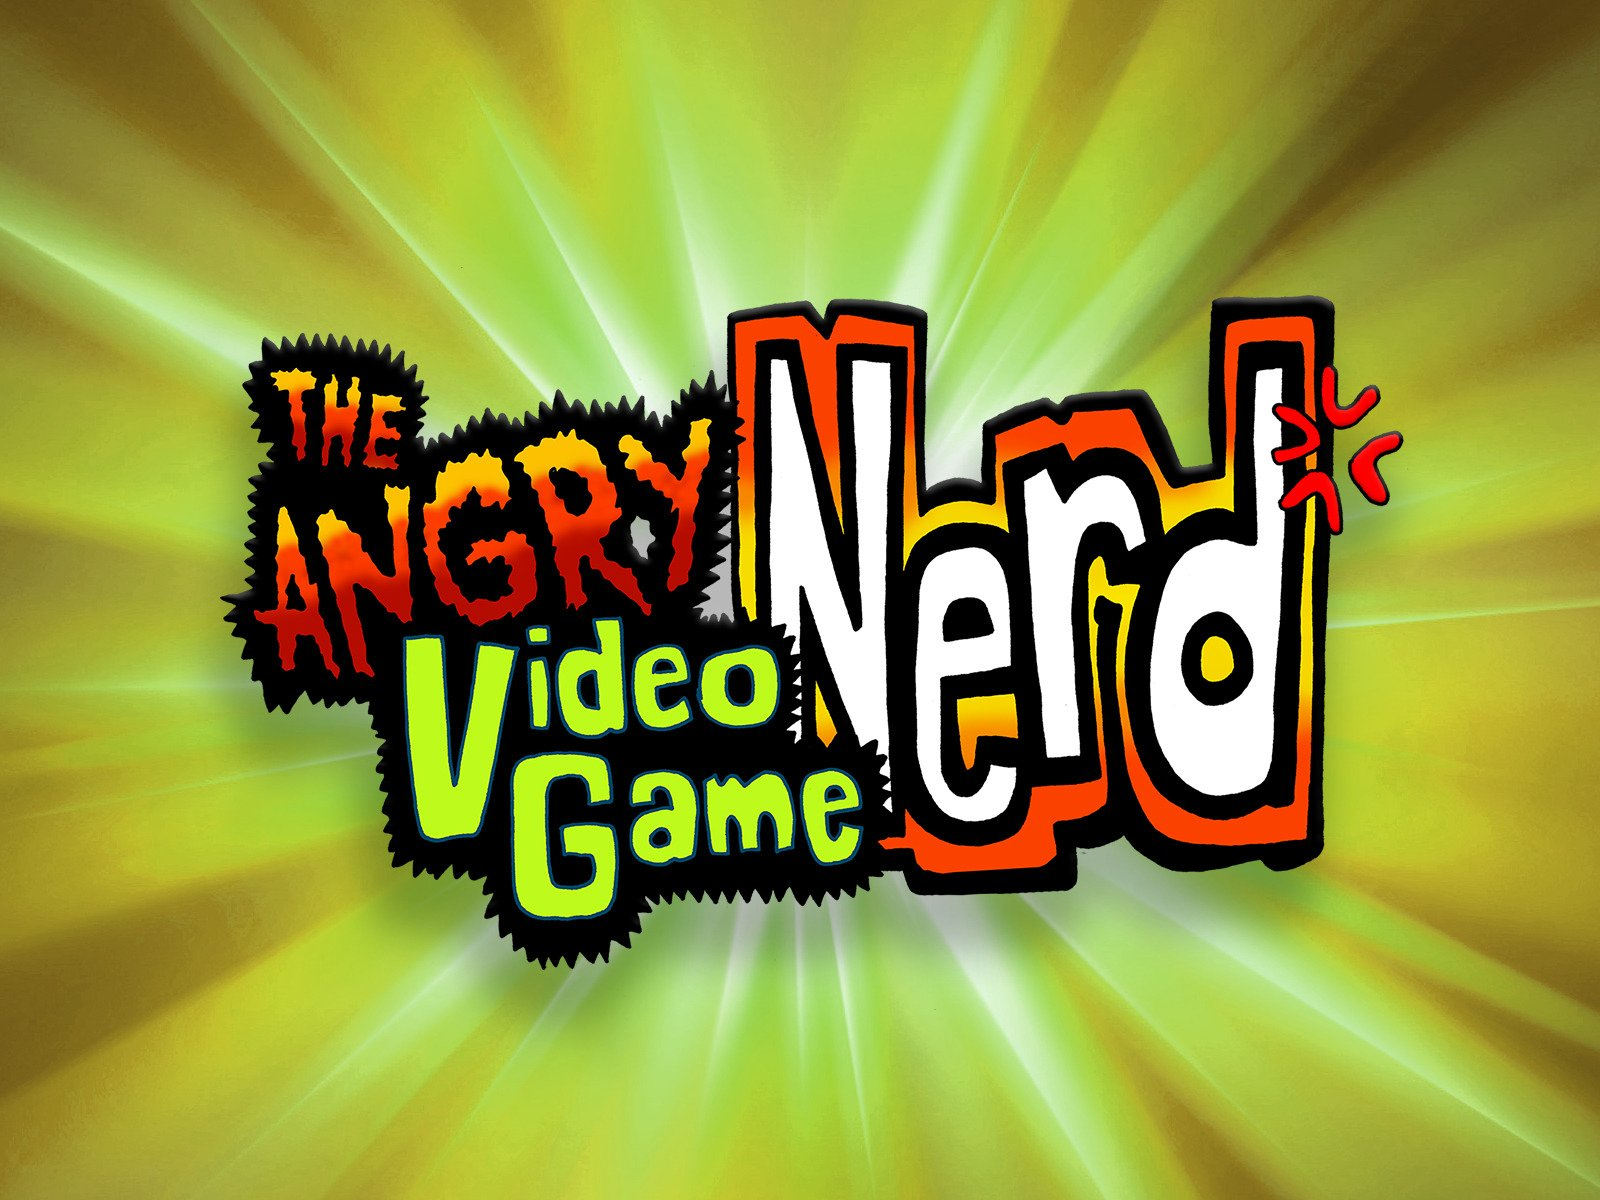 Angry Video Game Nerd - Season 5